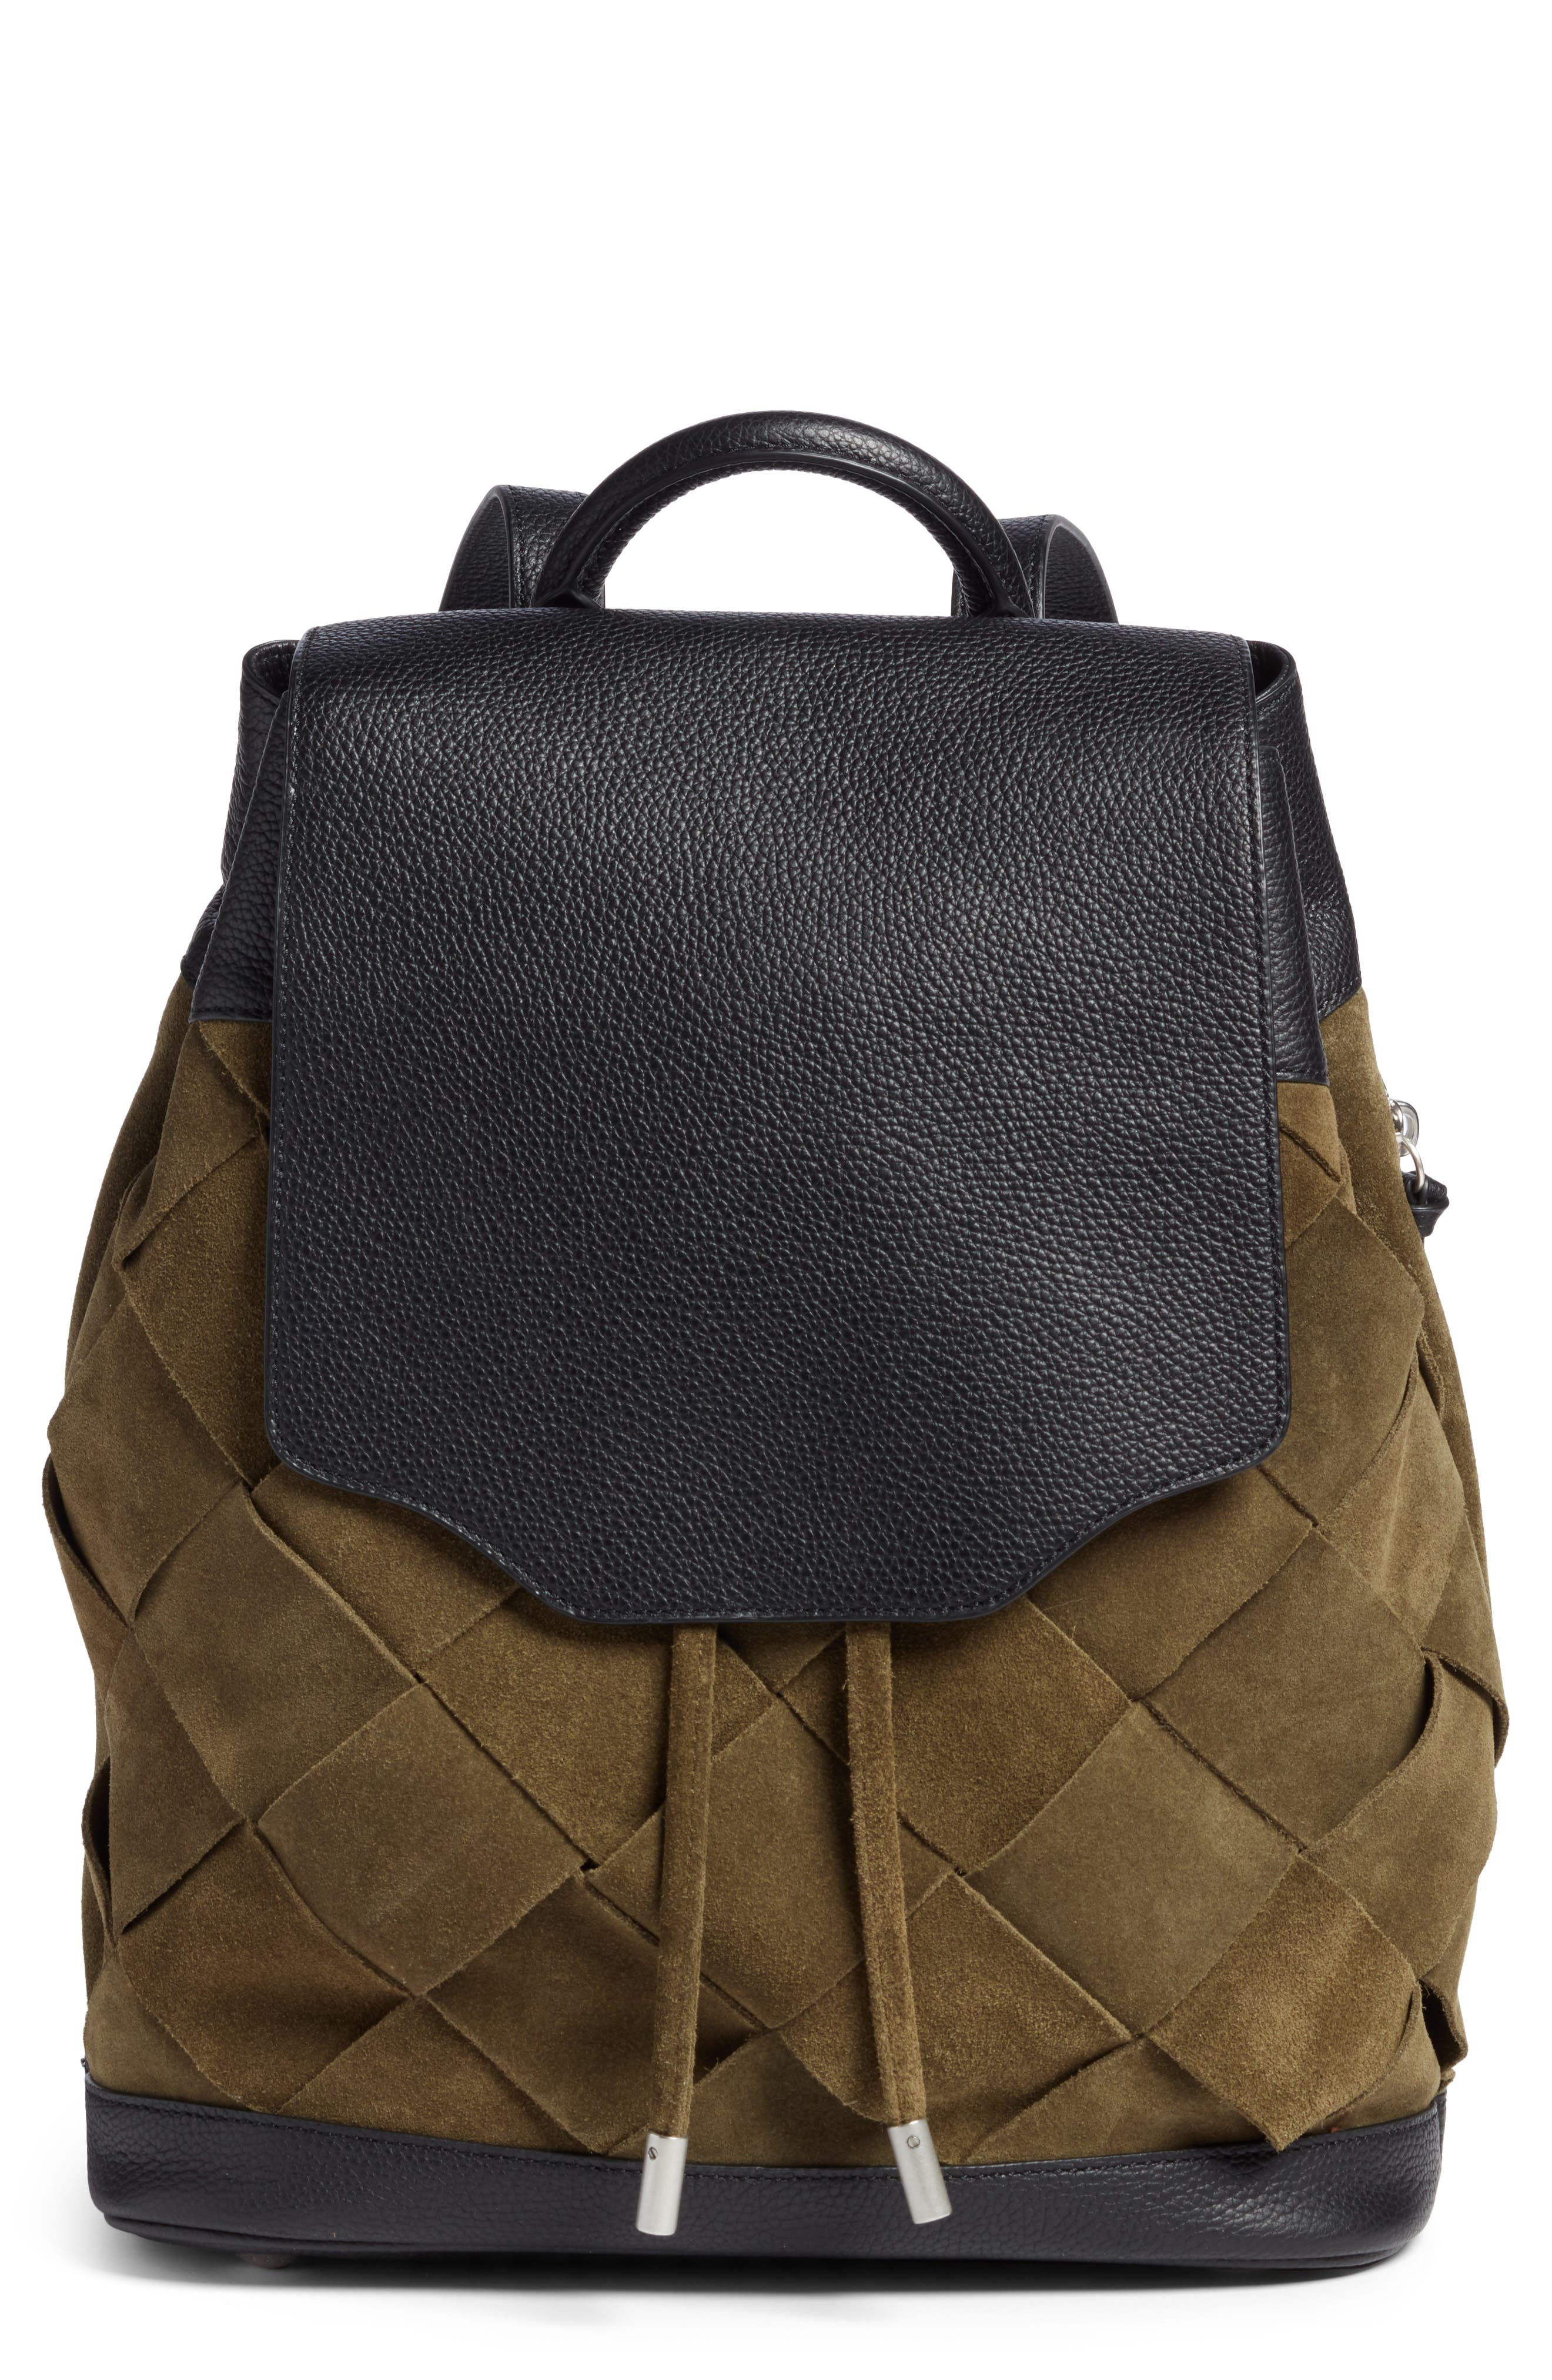 Pilot Suede & Leather Backpack,                             Main thumbnail 1, color,                             300